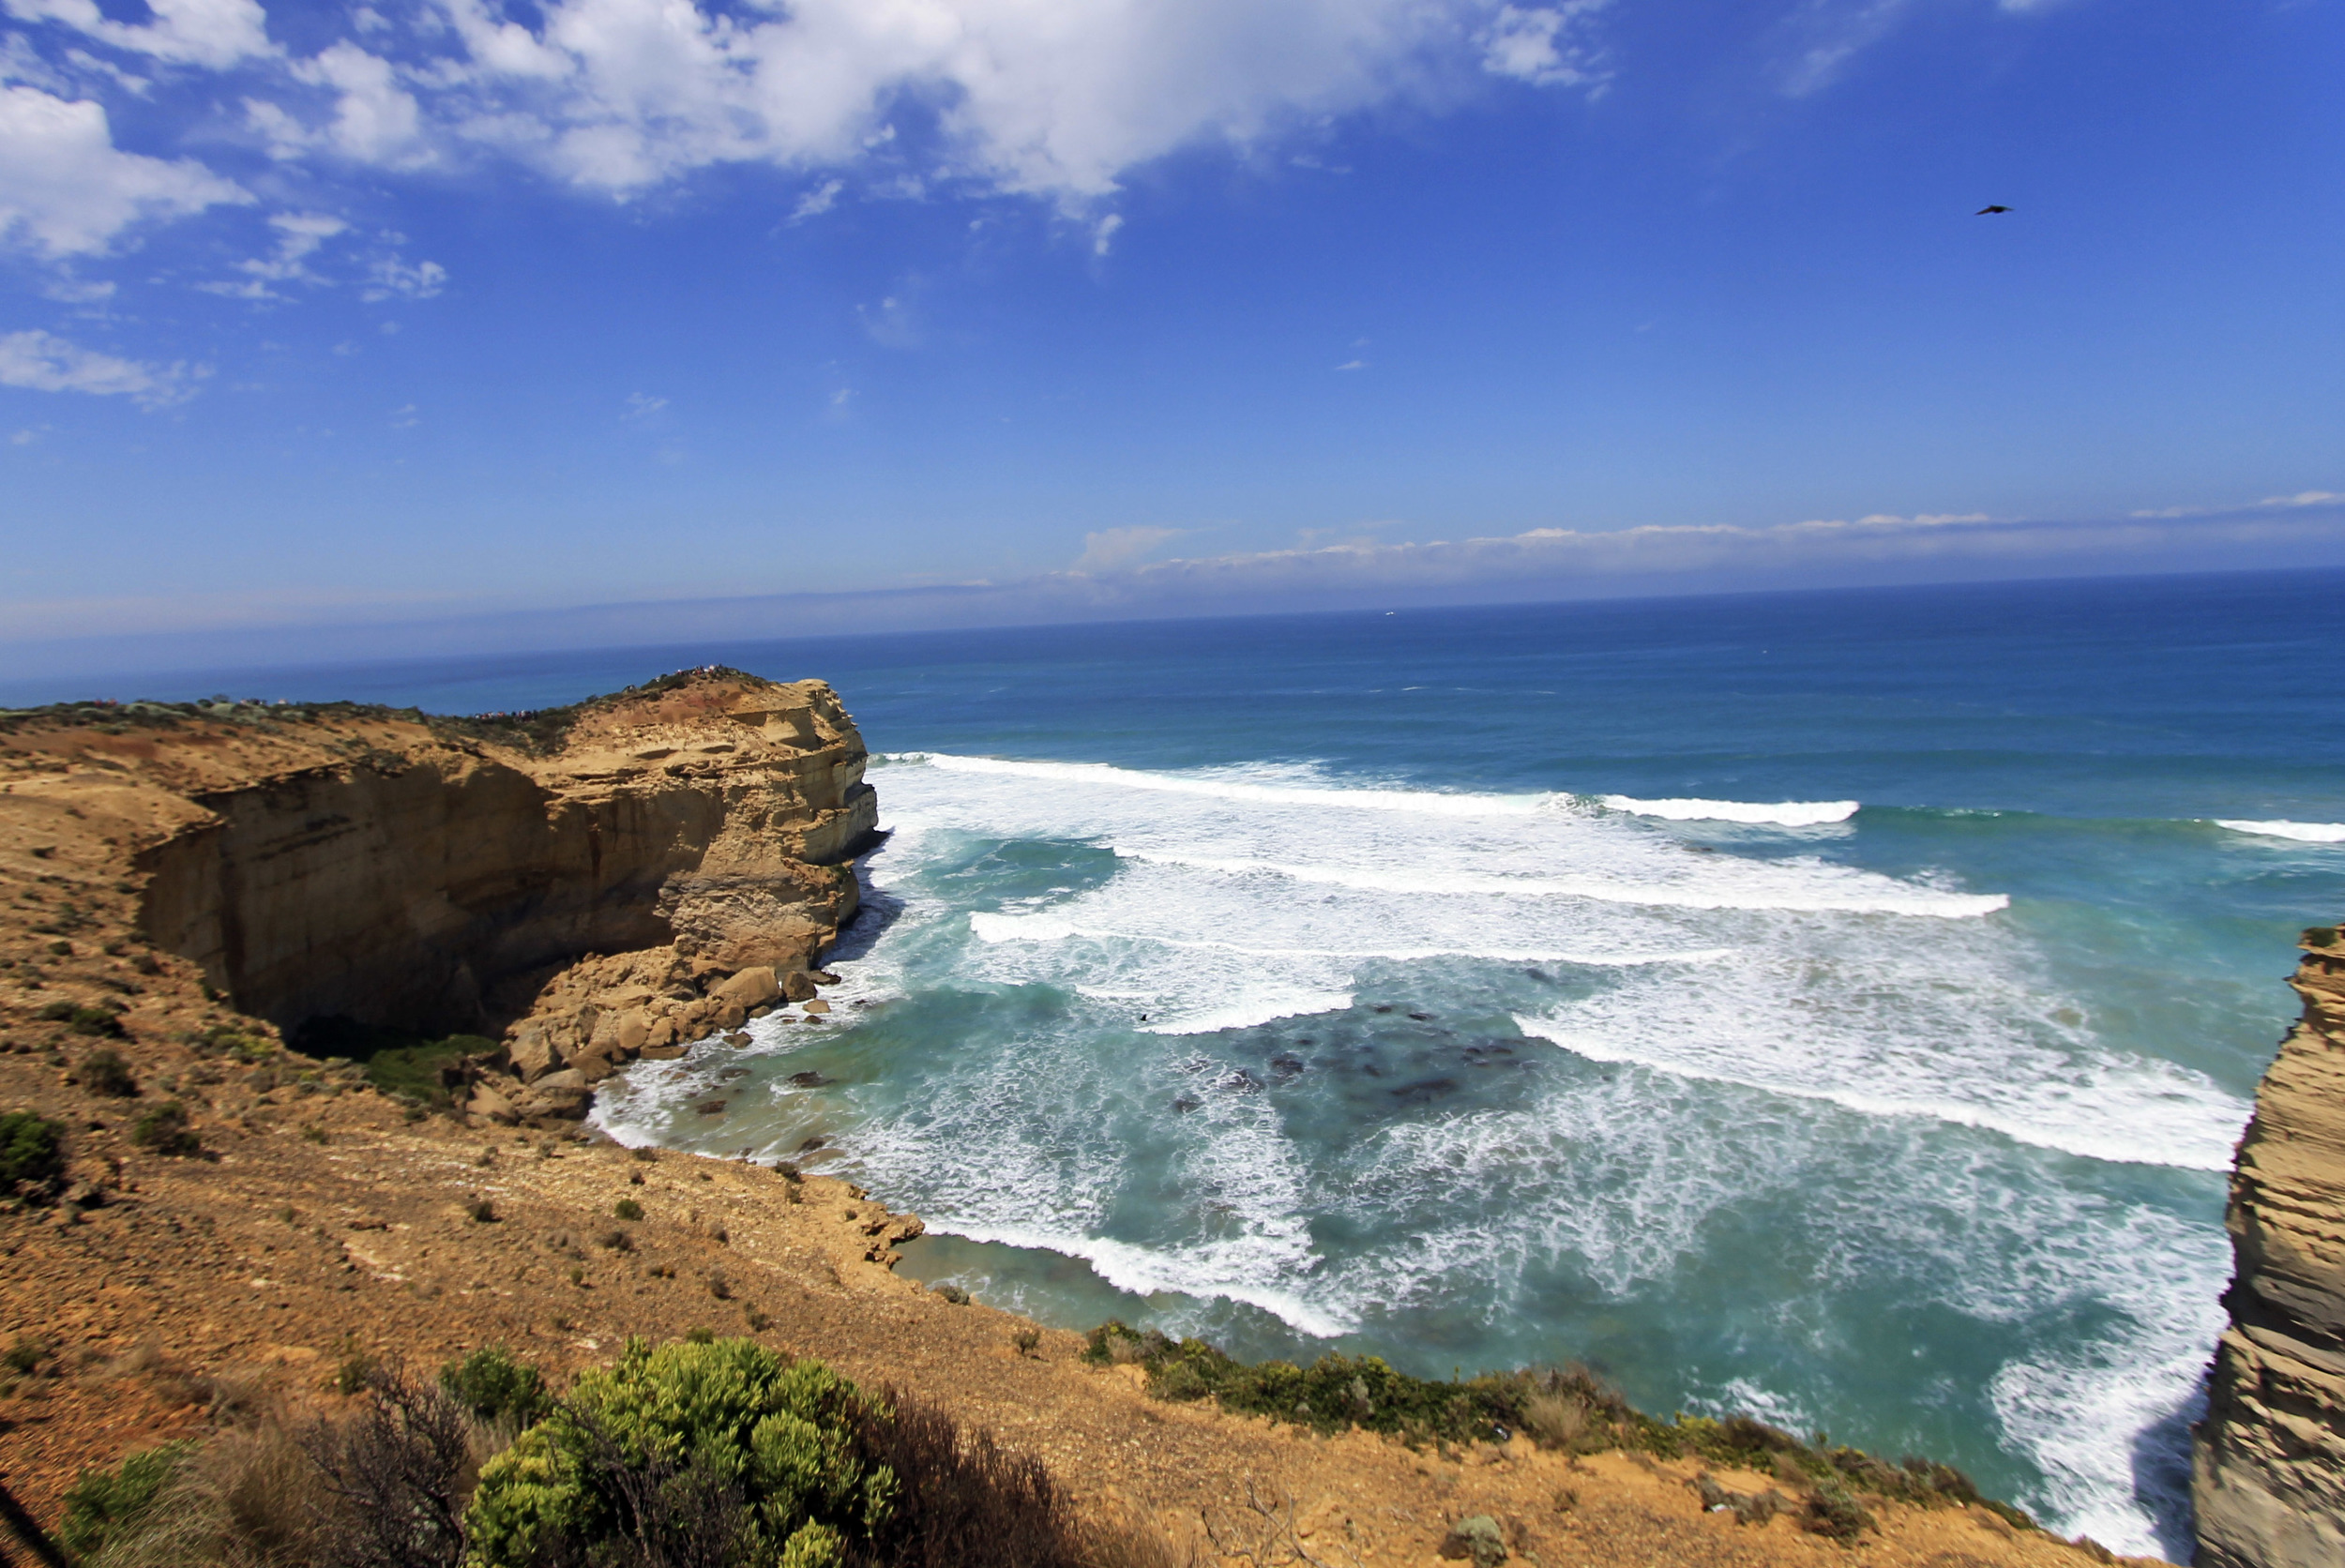 port-campbell-national-park-view-lookout-point-australia.jpg